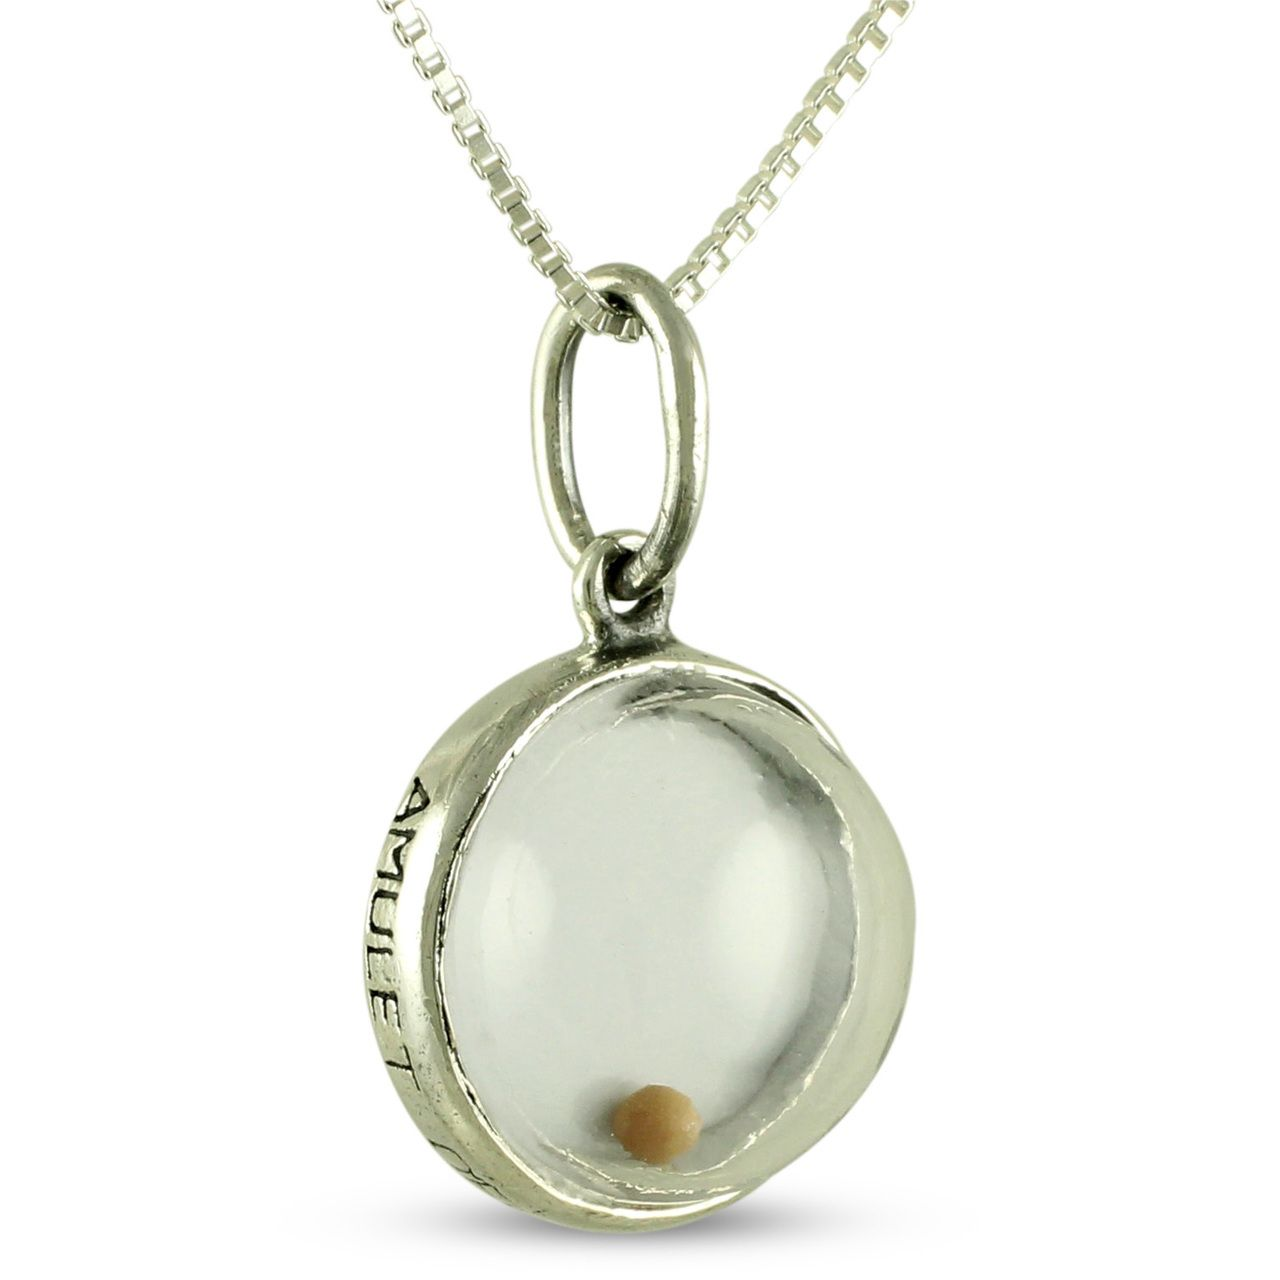 This is an image of the front of the mustard seed pendant dangling this is an image of the front of the mustard seed pendant dangling from the sterling aloadofball Image collections